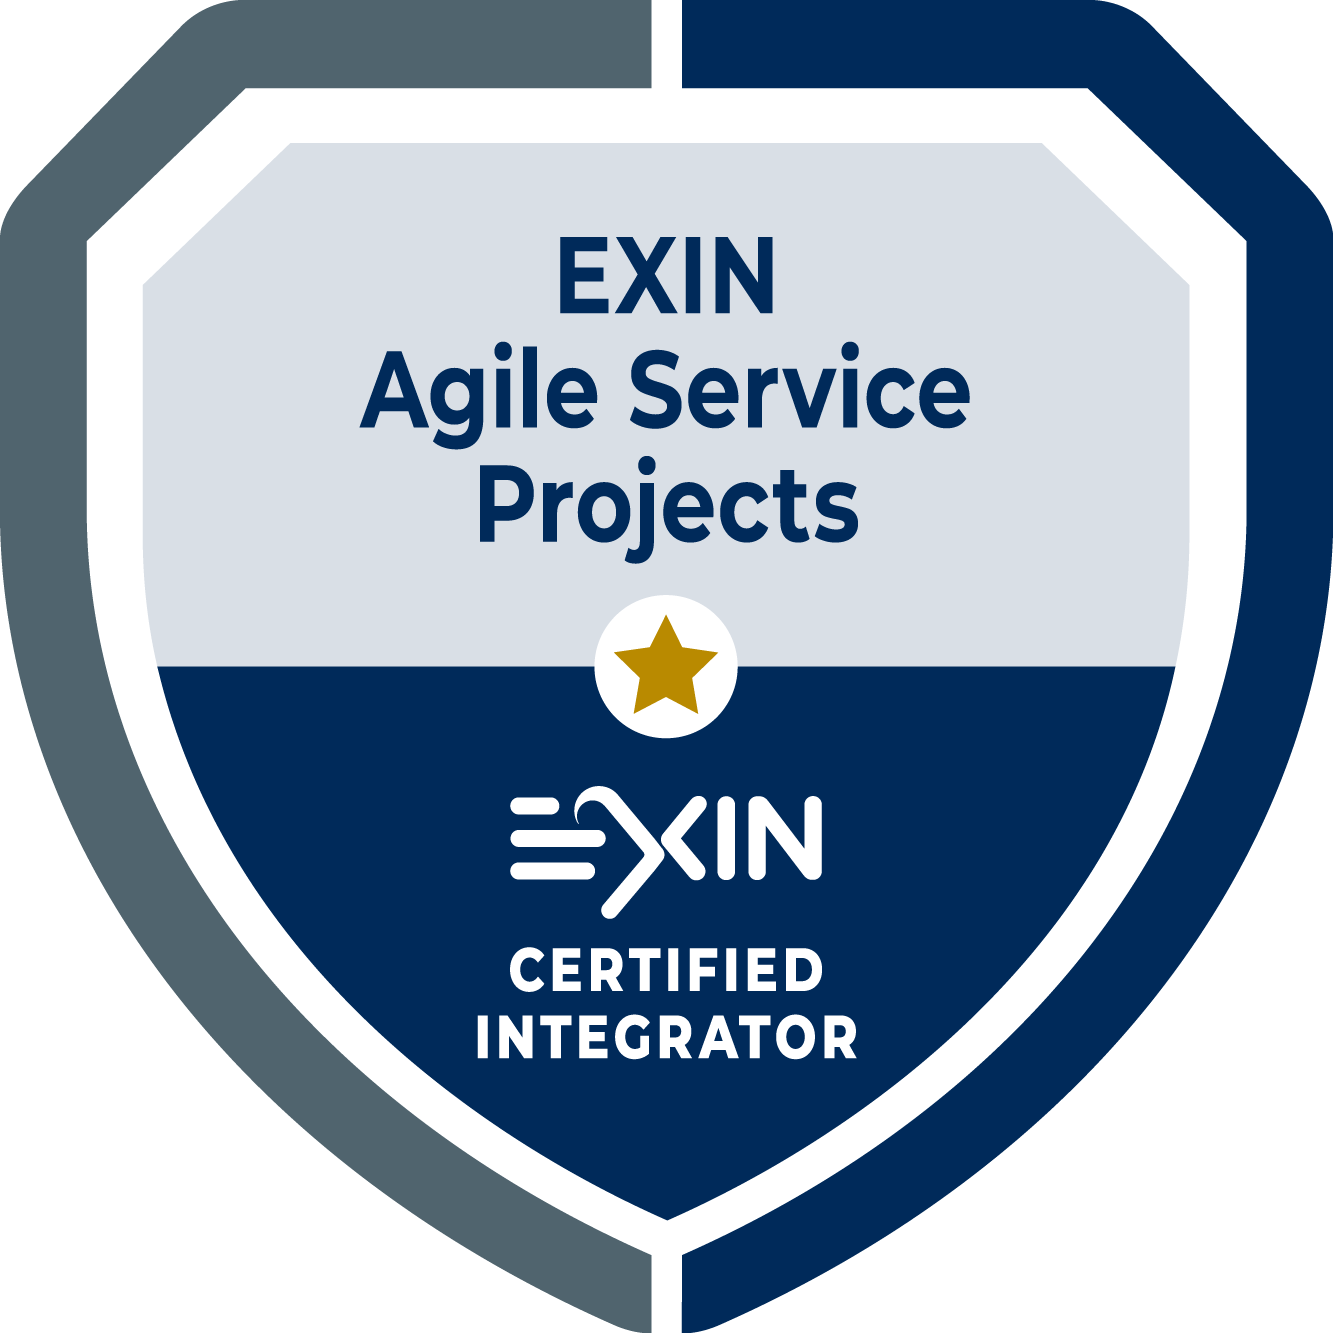 EXIN Certified Integrator in Agile Service Projects